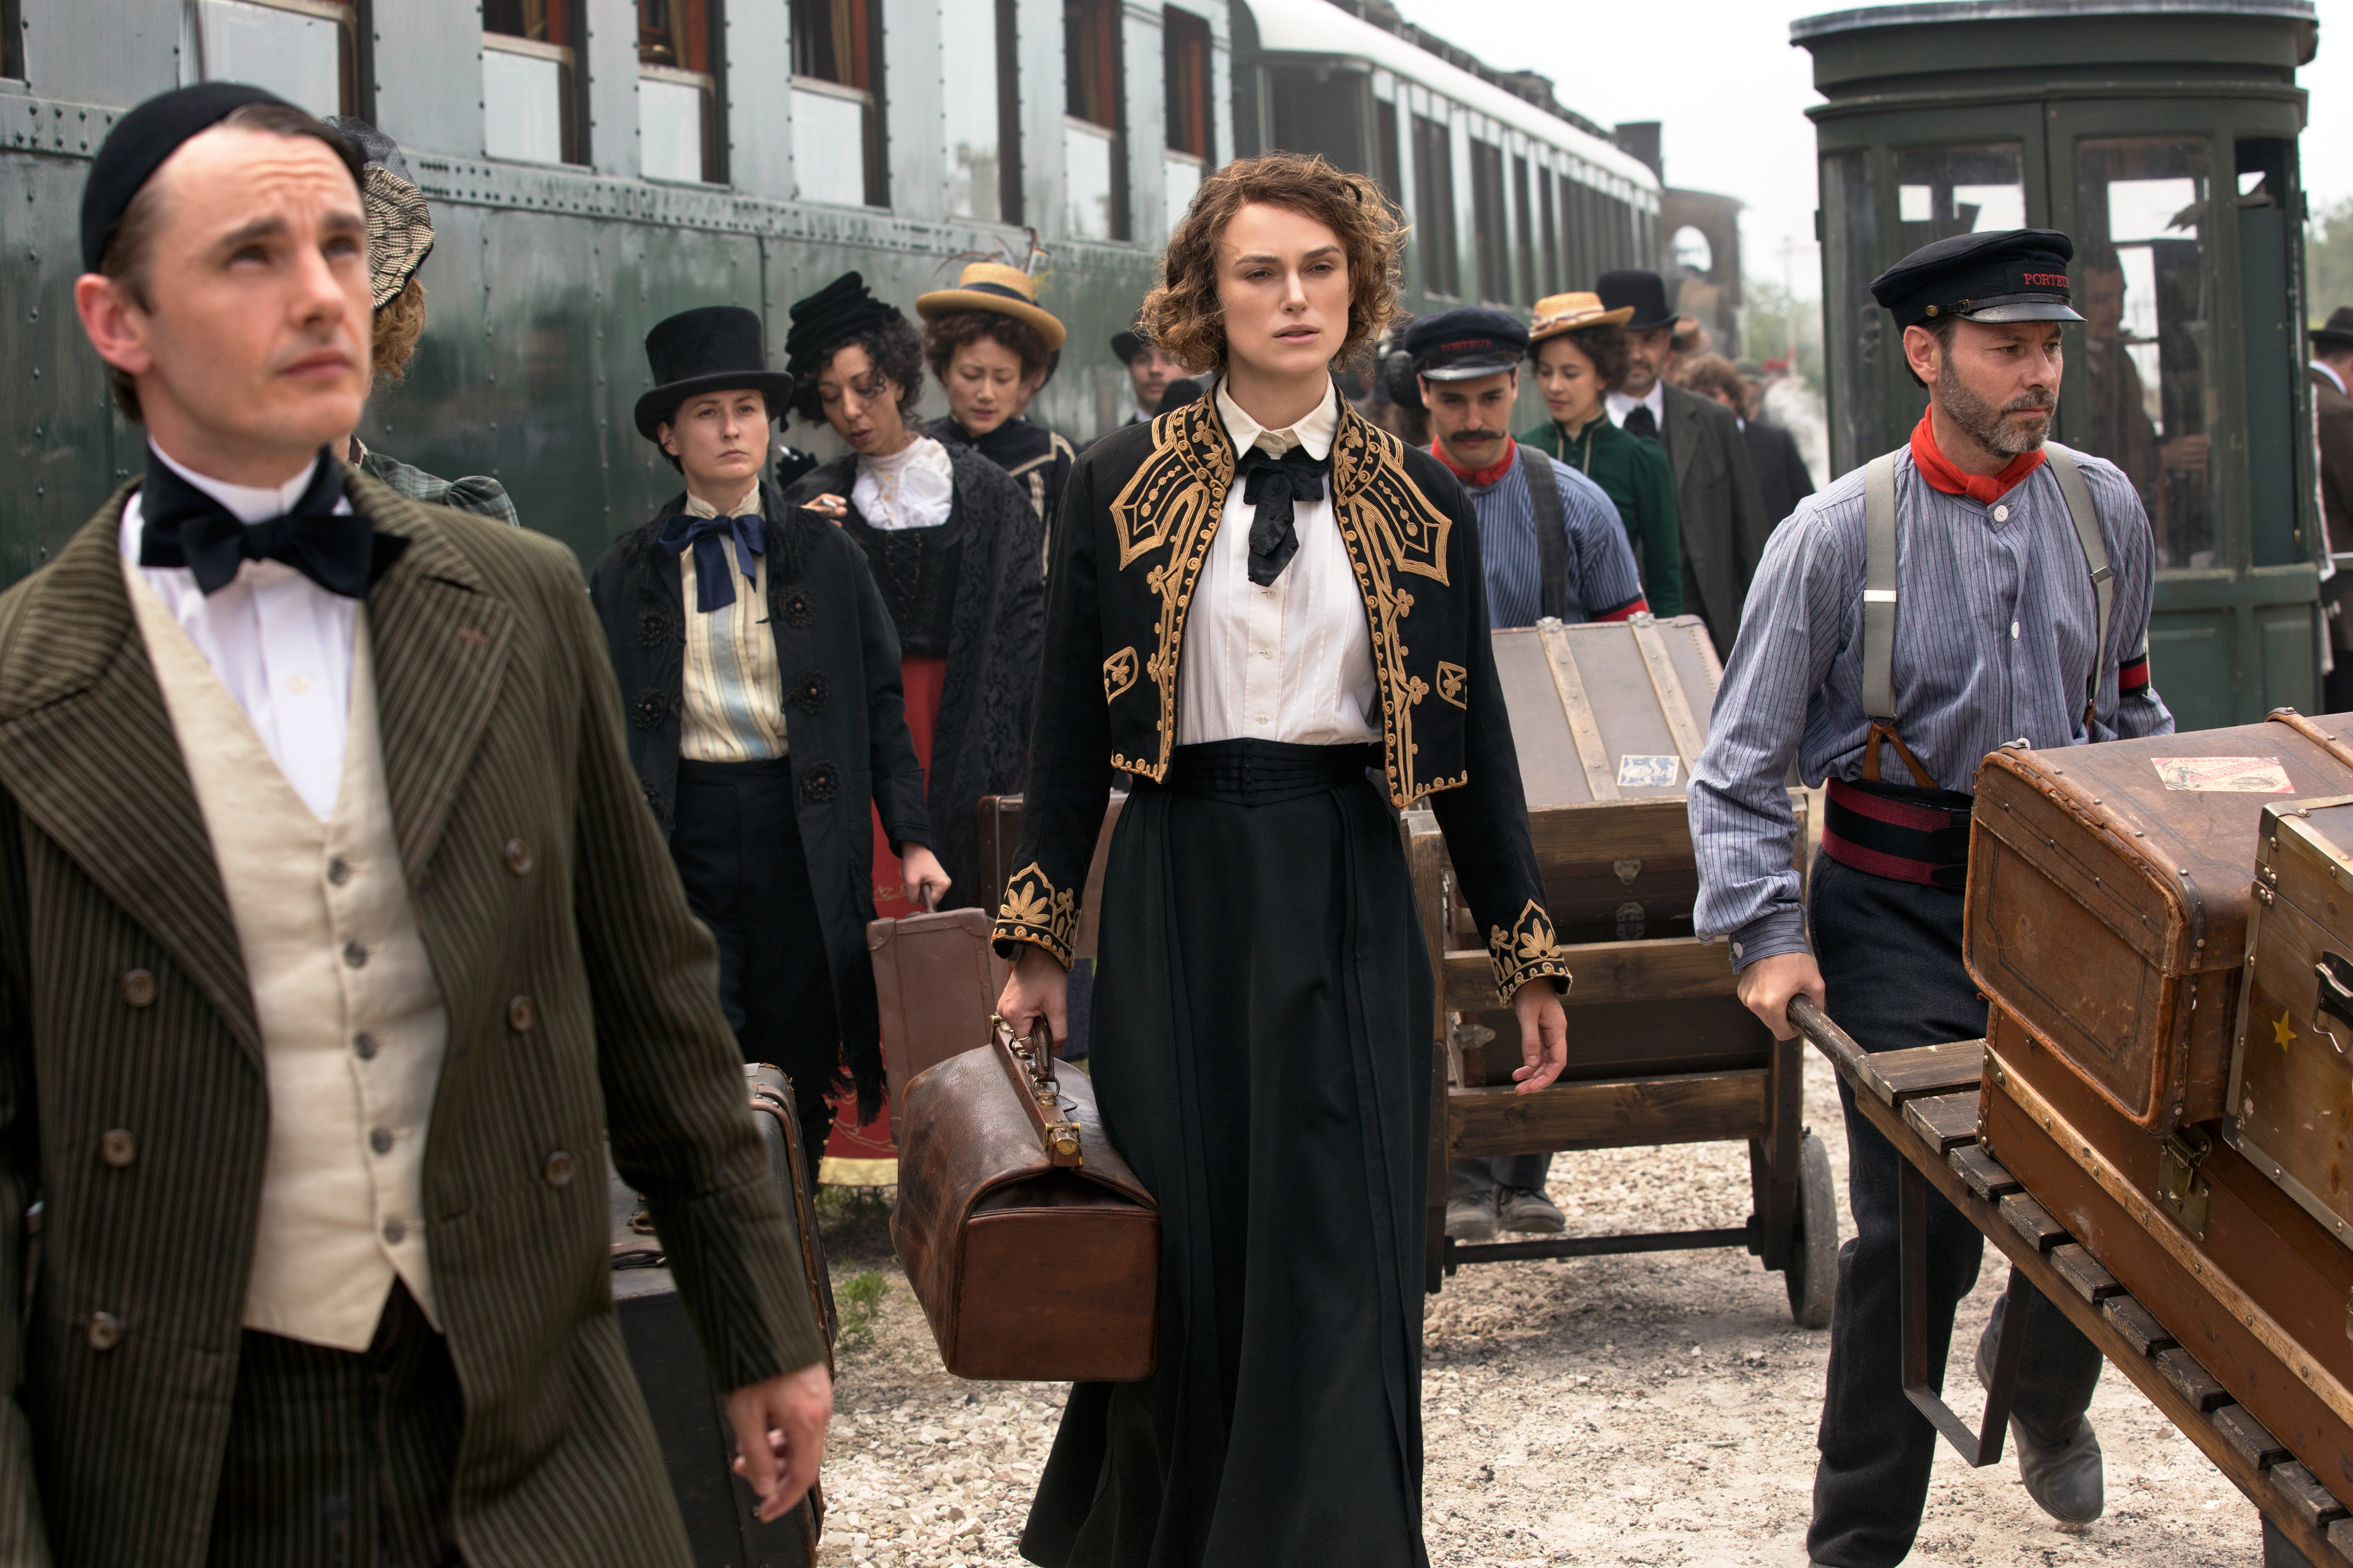 Colette' Movie Starring Keira Knightley: Review – Rolling Stone